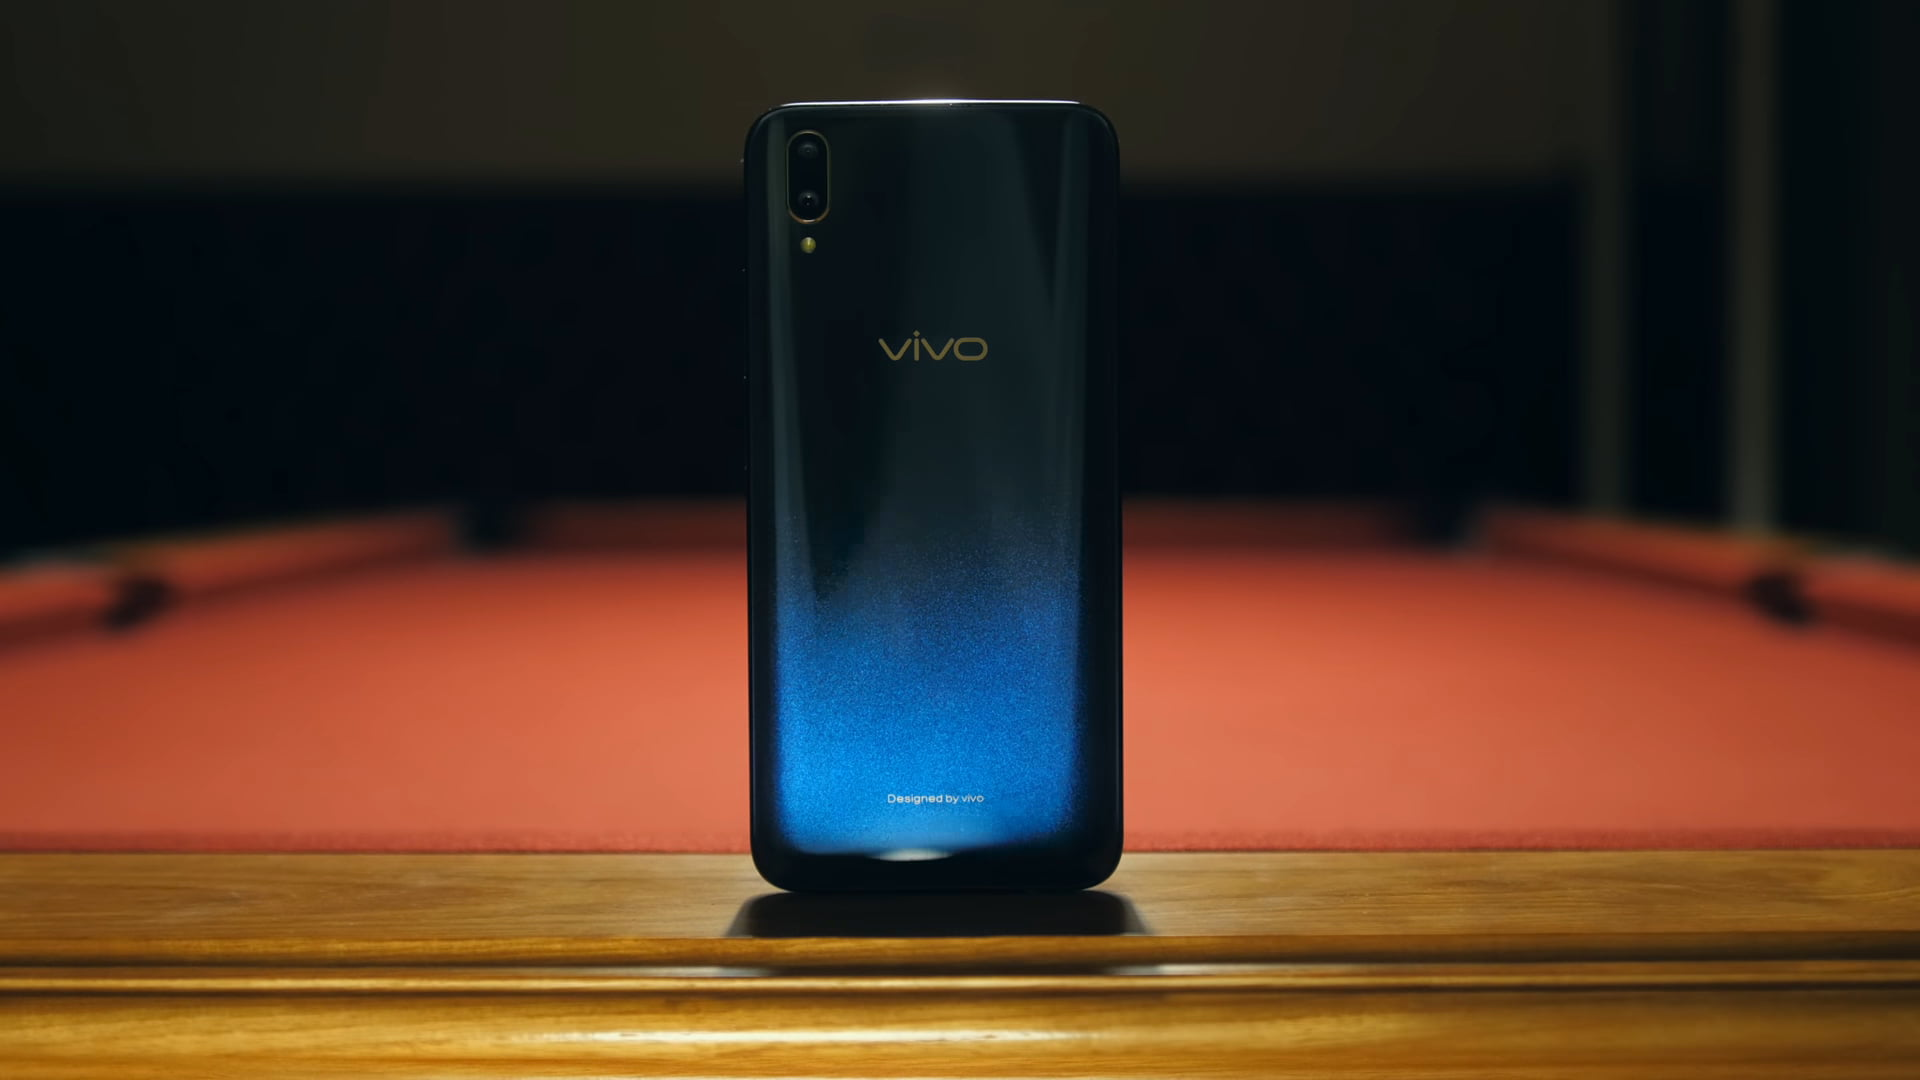 Vivo V11 with Halo Fullview Display is launching today